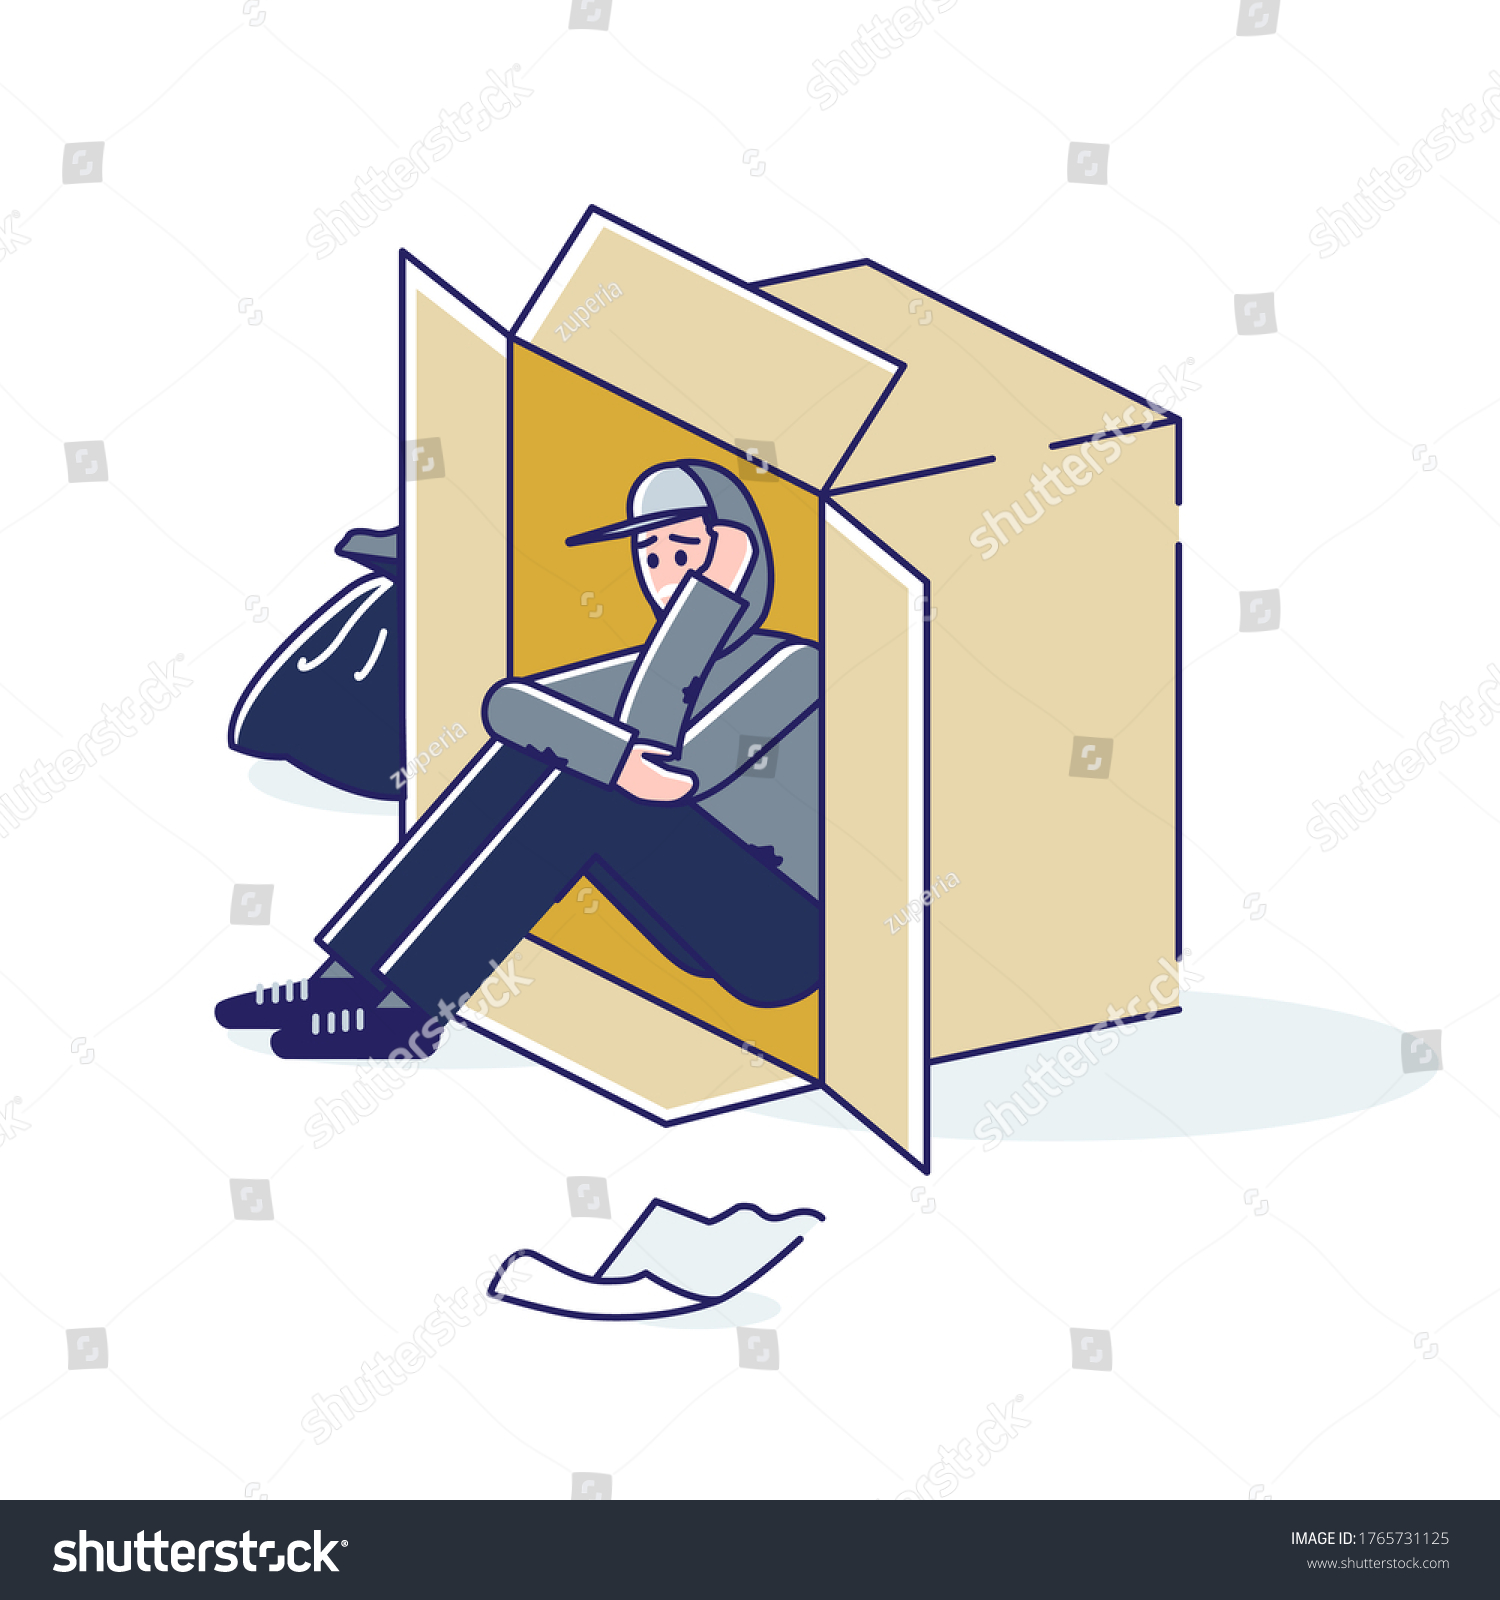 Young Homeless Man Living On Street Stock Vector Royalty Free ...